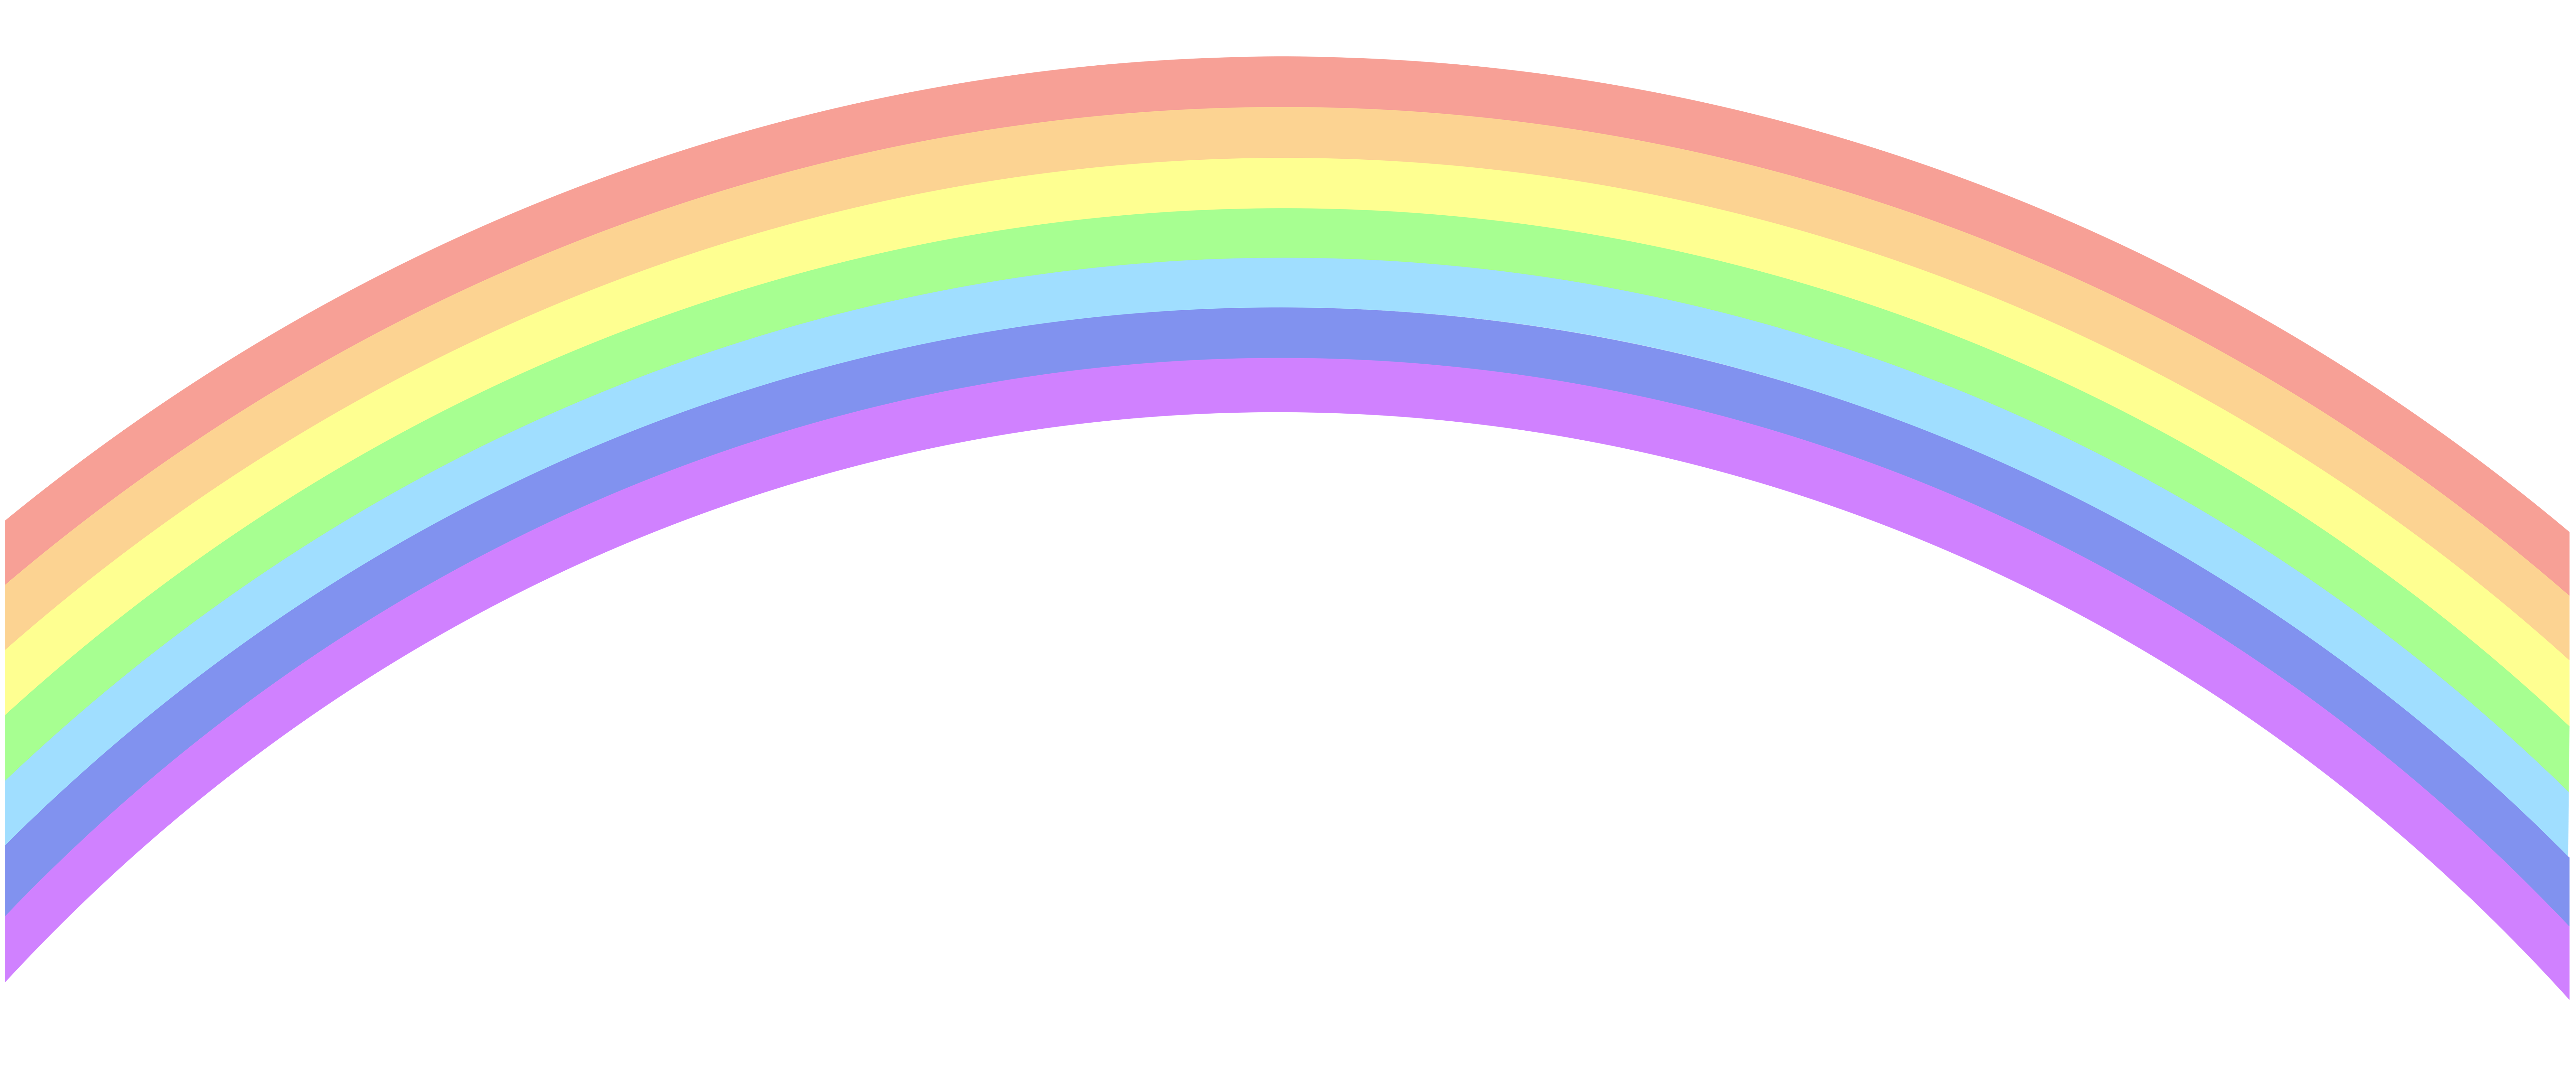 Rainbow Clip Art PNG Image.